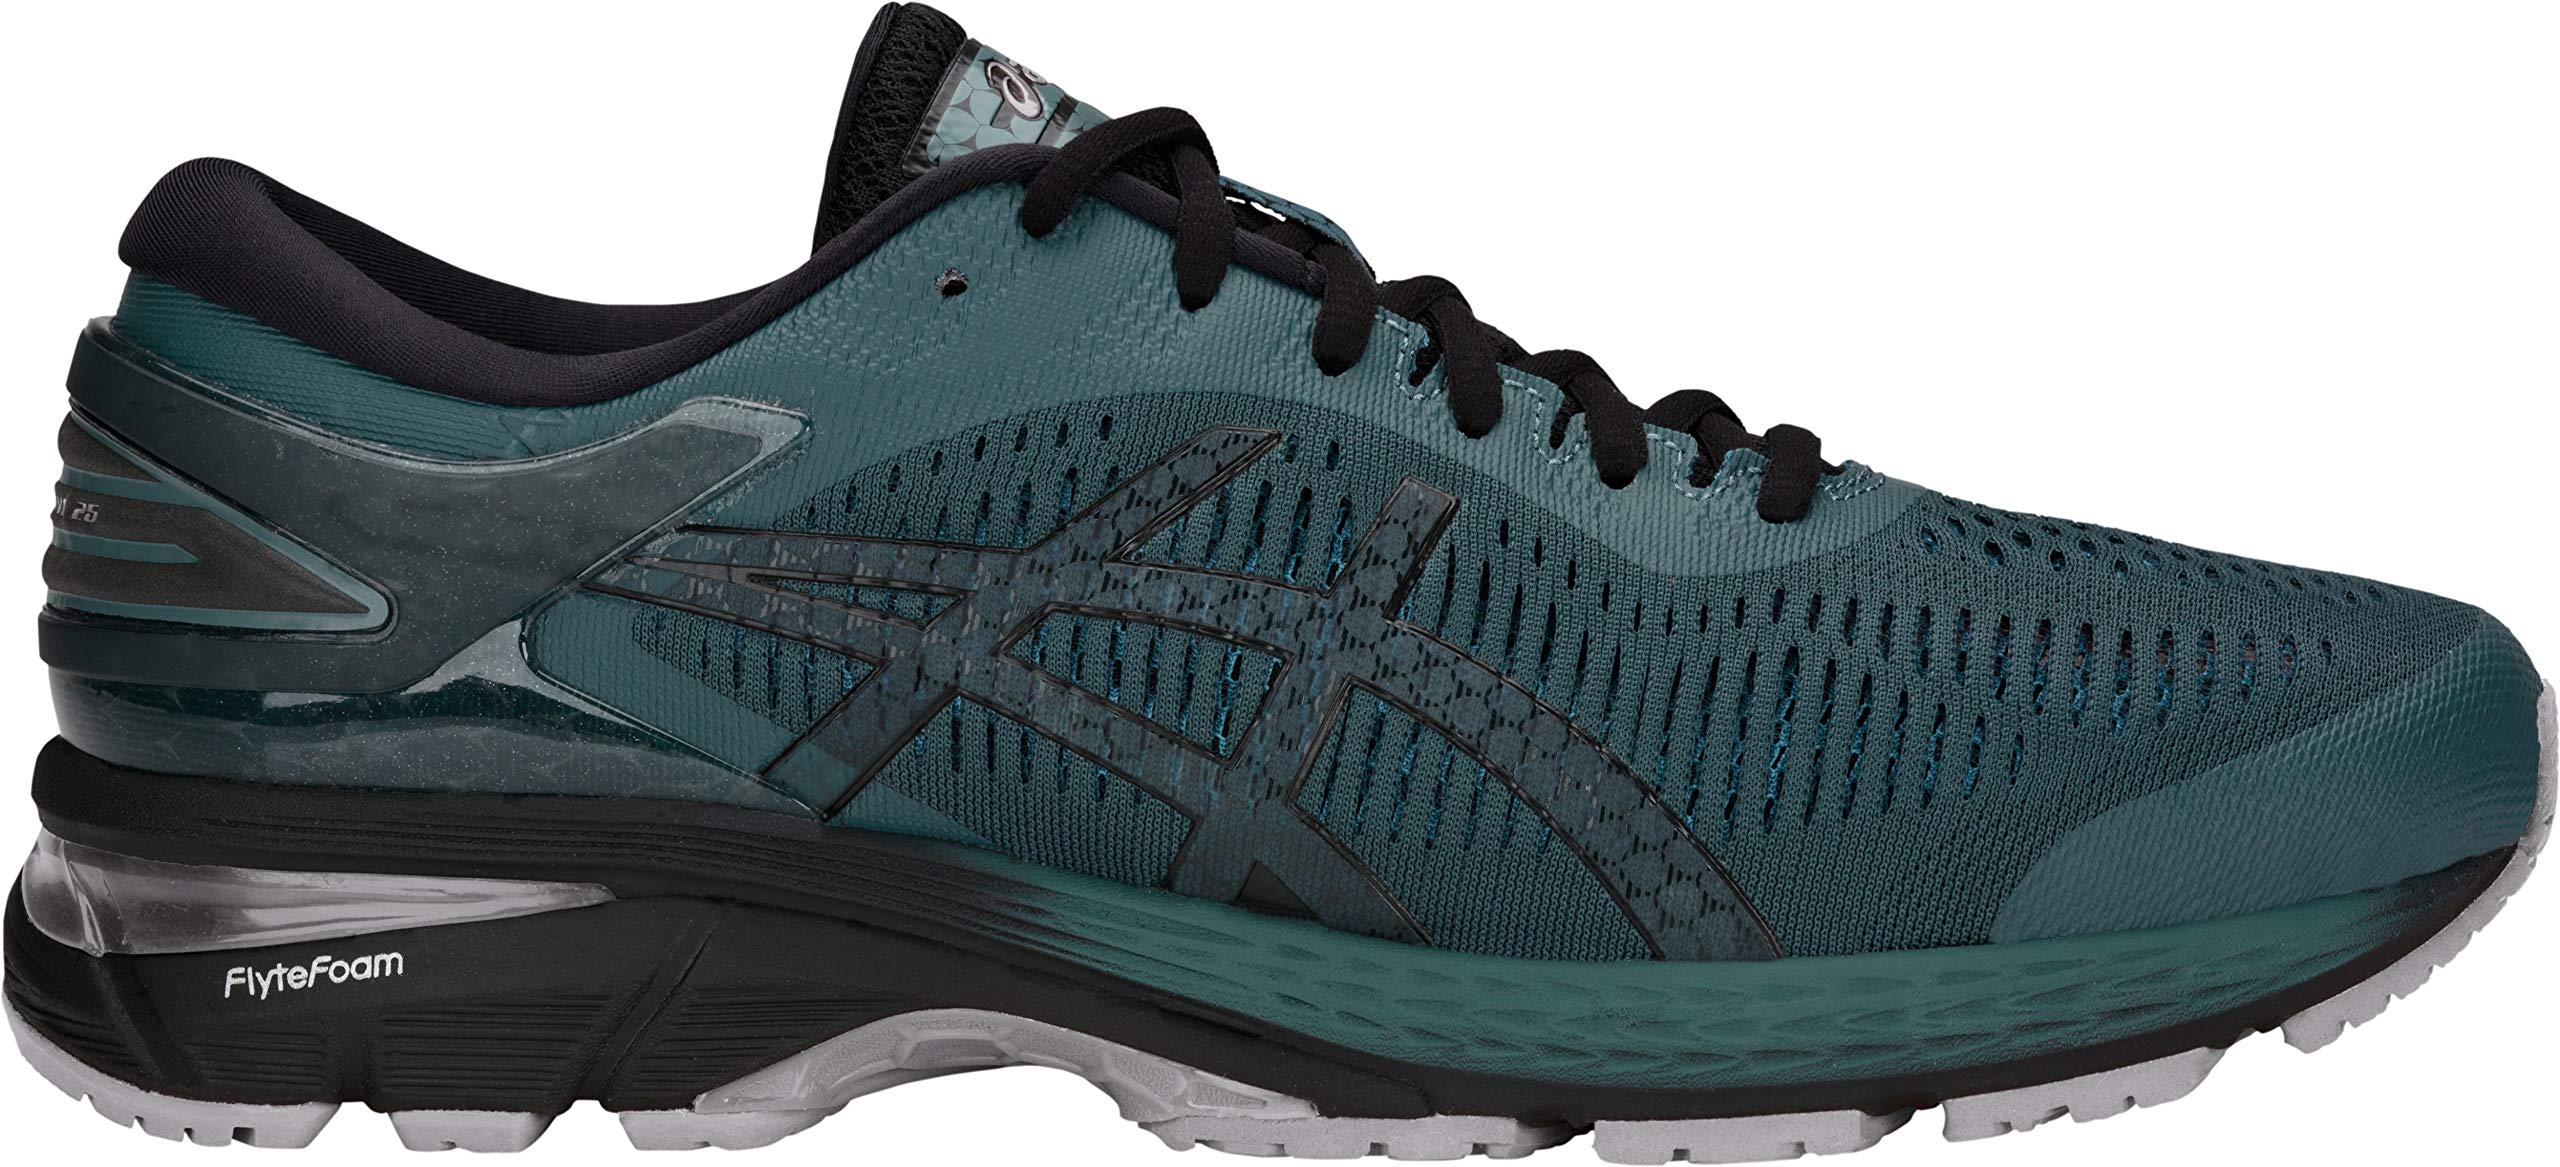 38c3080204c Galleon - ASICS Men s Gel-Kayano 25 Running Shoe